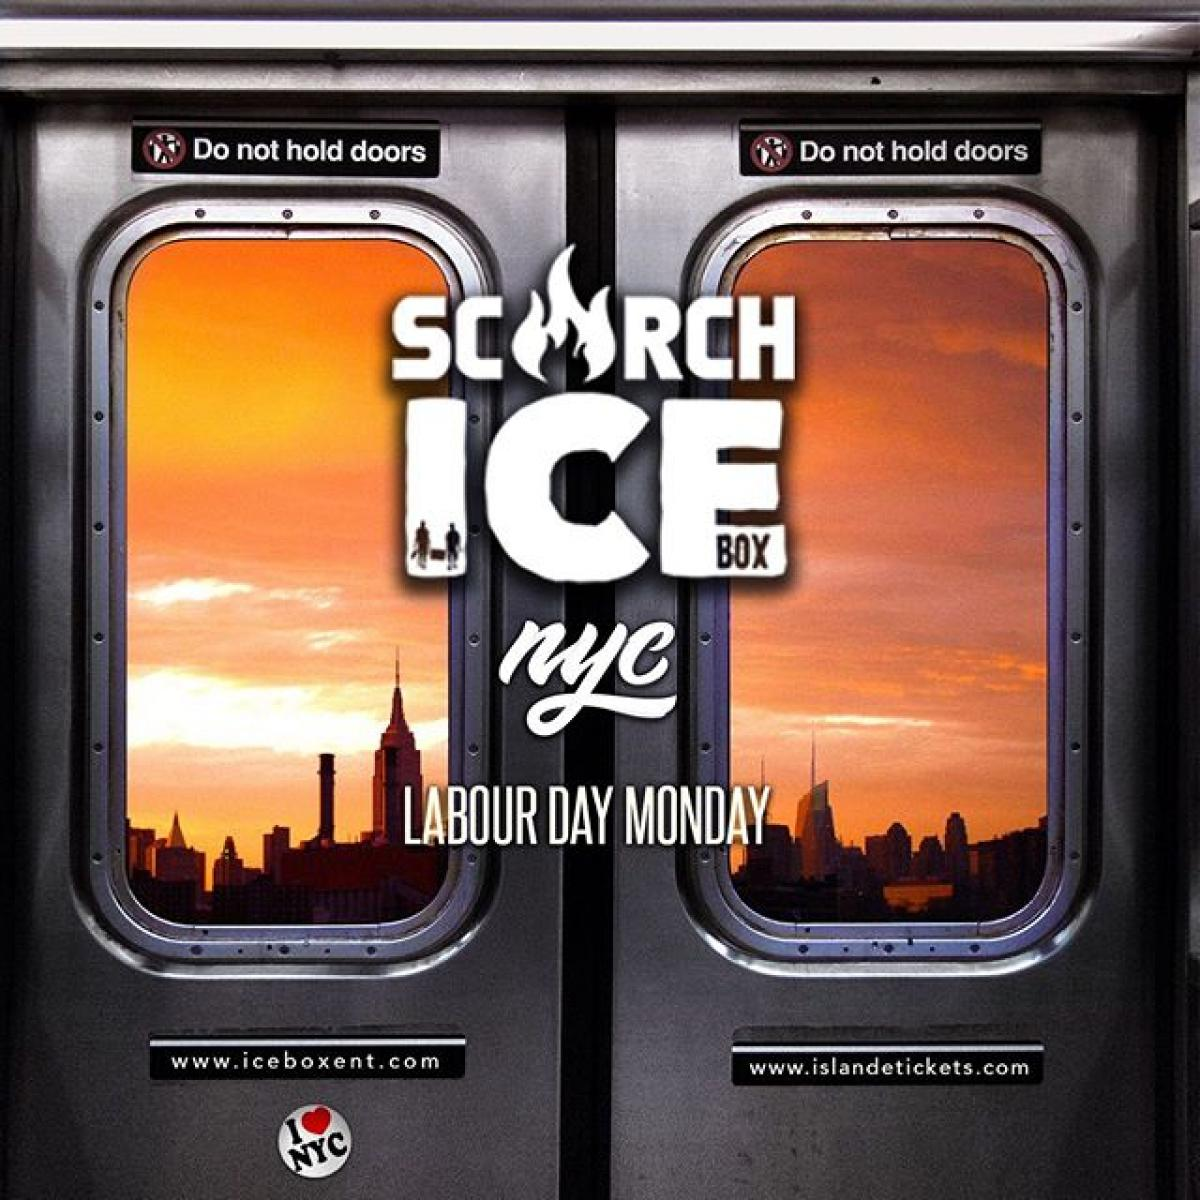 SCORCH + ICEBOX Labor Day flyer or graphic.